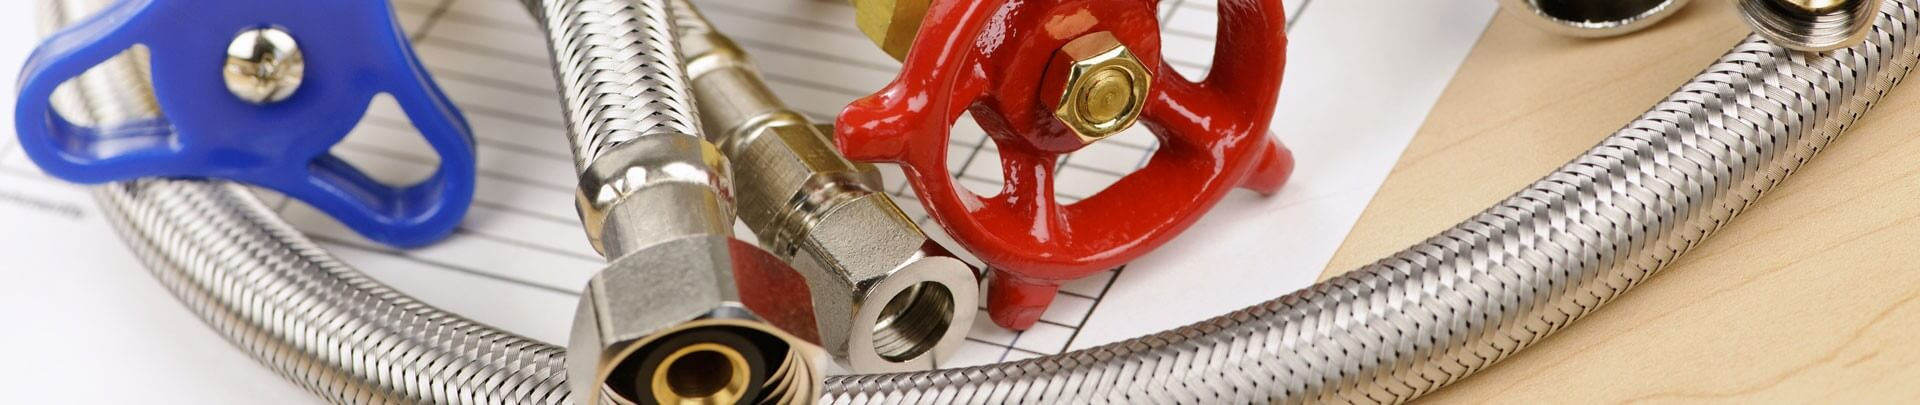 Experts Plumbing Services, LLC - Plumbing